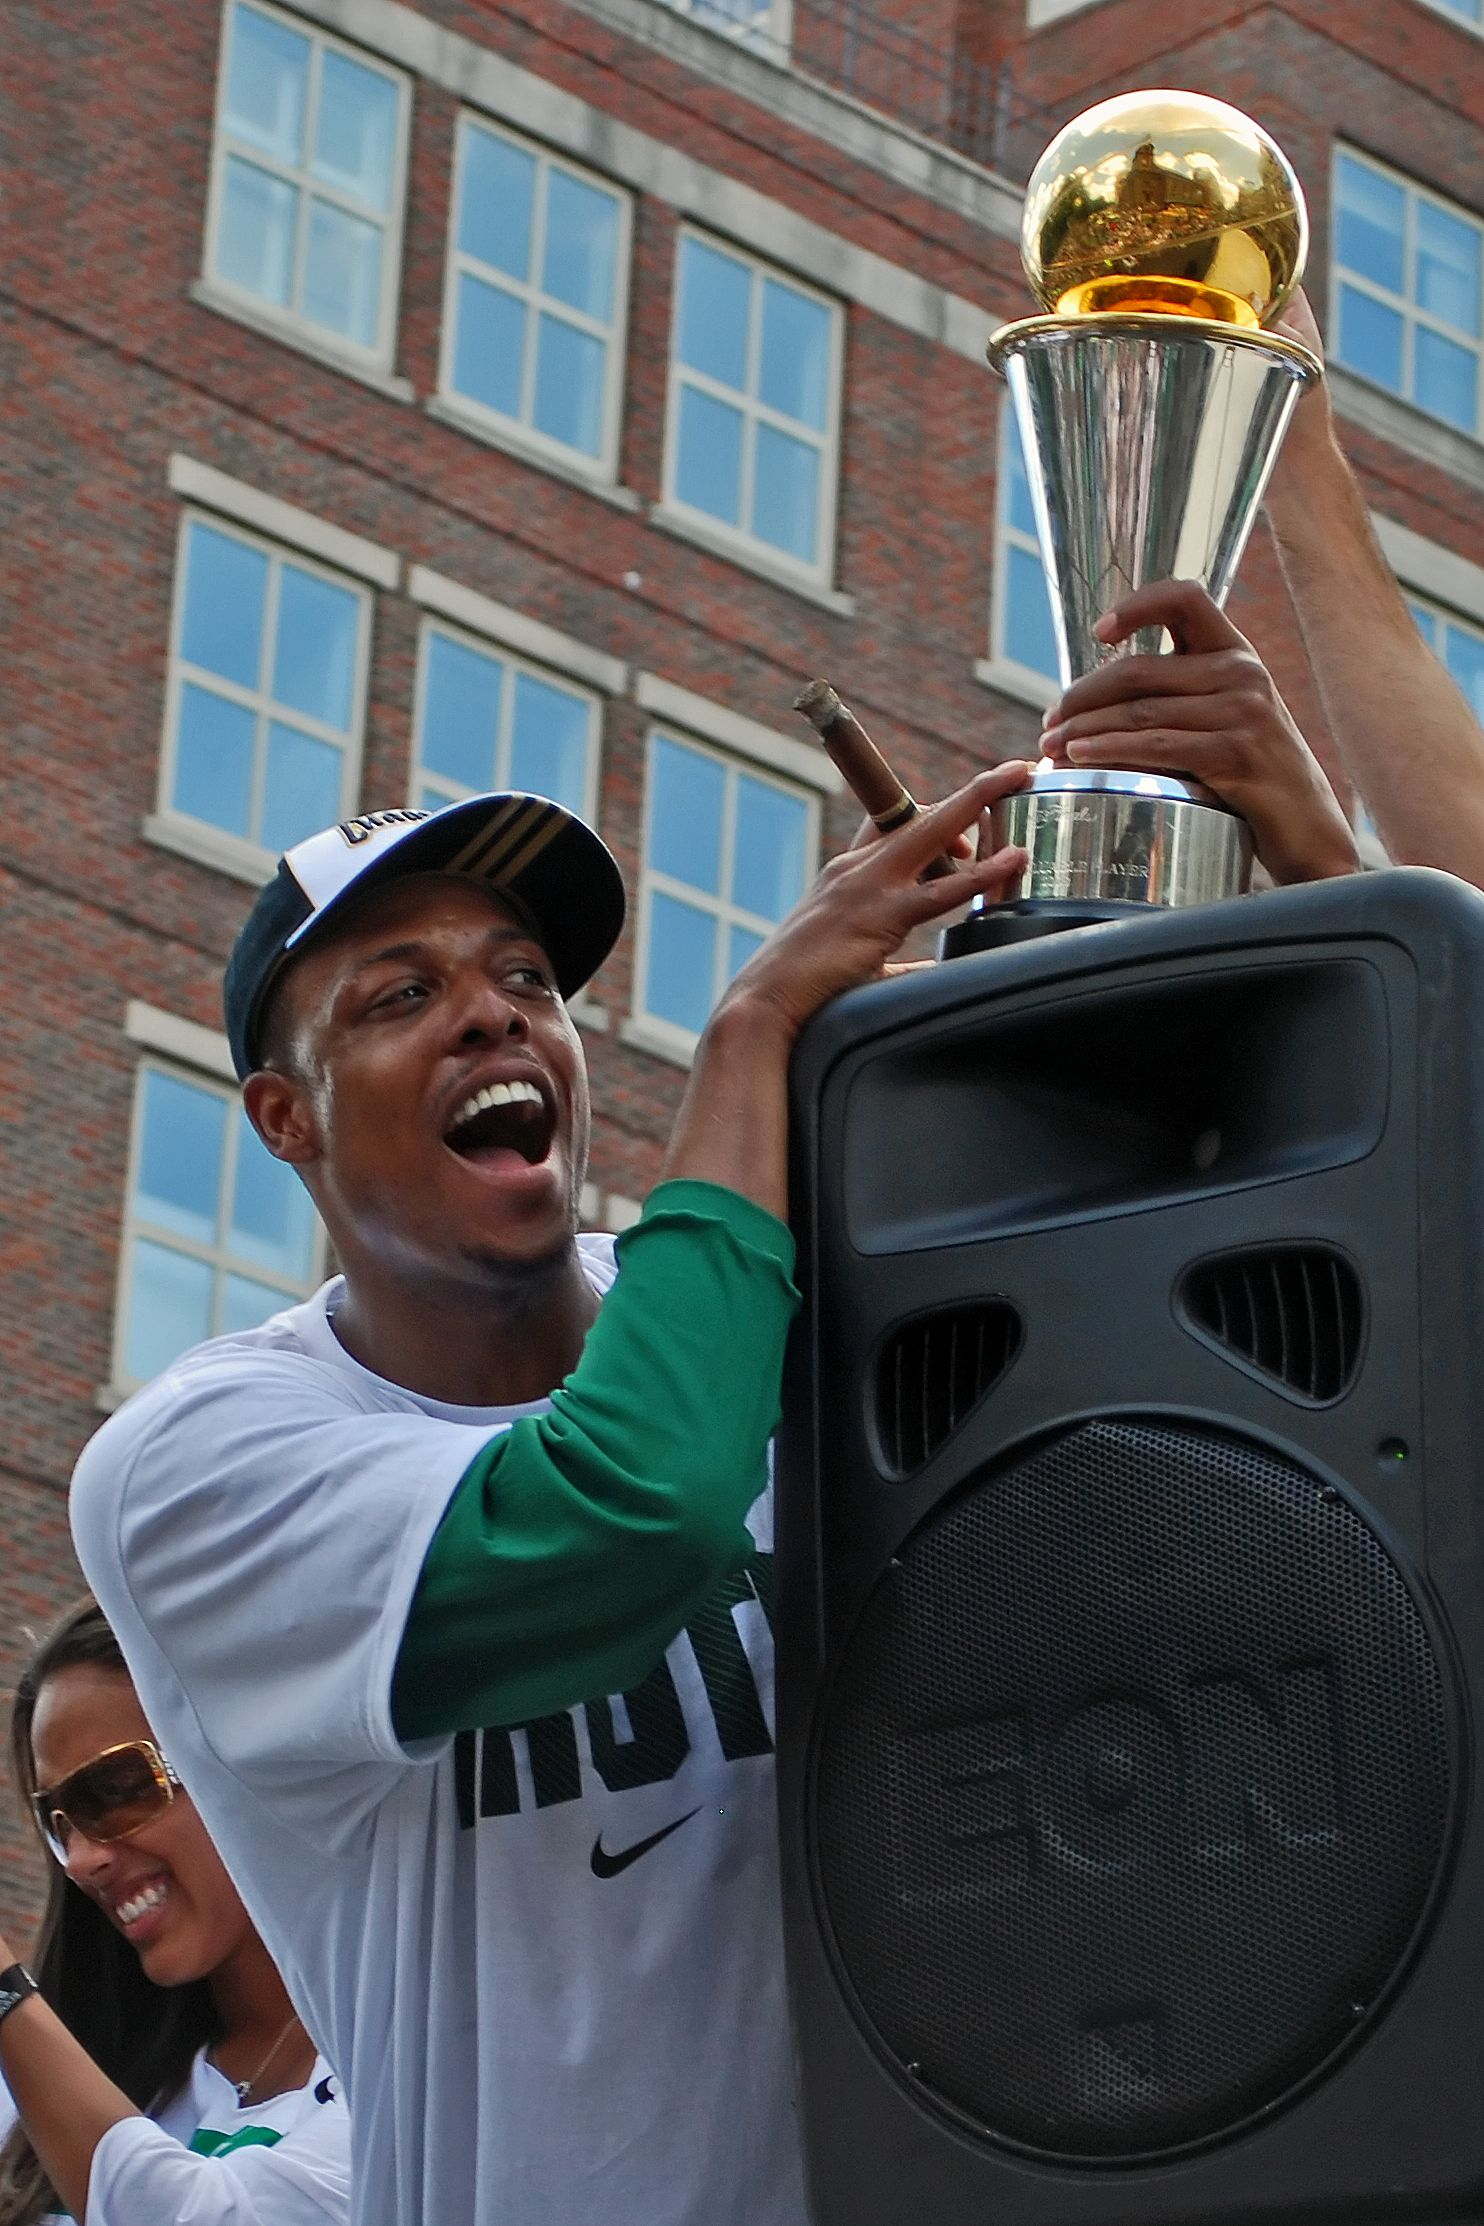 Paul Pierce will be a Celtic forever and his Instagram tribute was just icing on the cake. http://sports.yahoo.com/news/truthfully-classy-paul-pierce-thanks-boston-celtics-fans-181300970.html http://sulia.com/channel/boston-celtics/f/67637b05-2a76-4790-a97a-97cfd1b6cb88/?